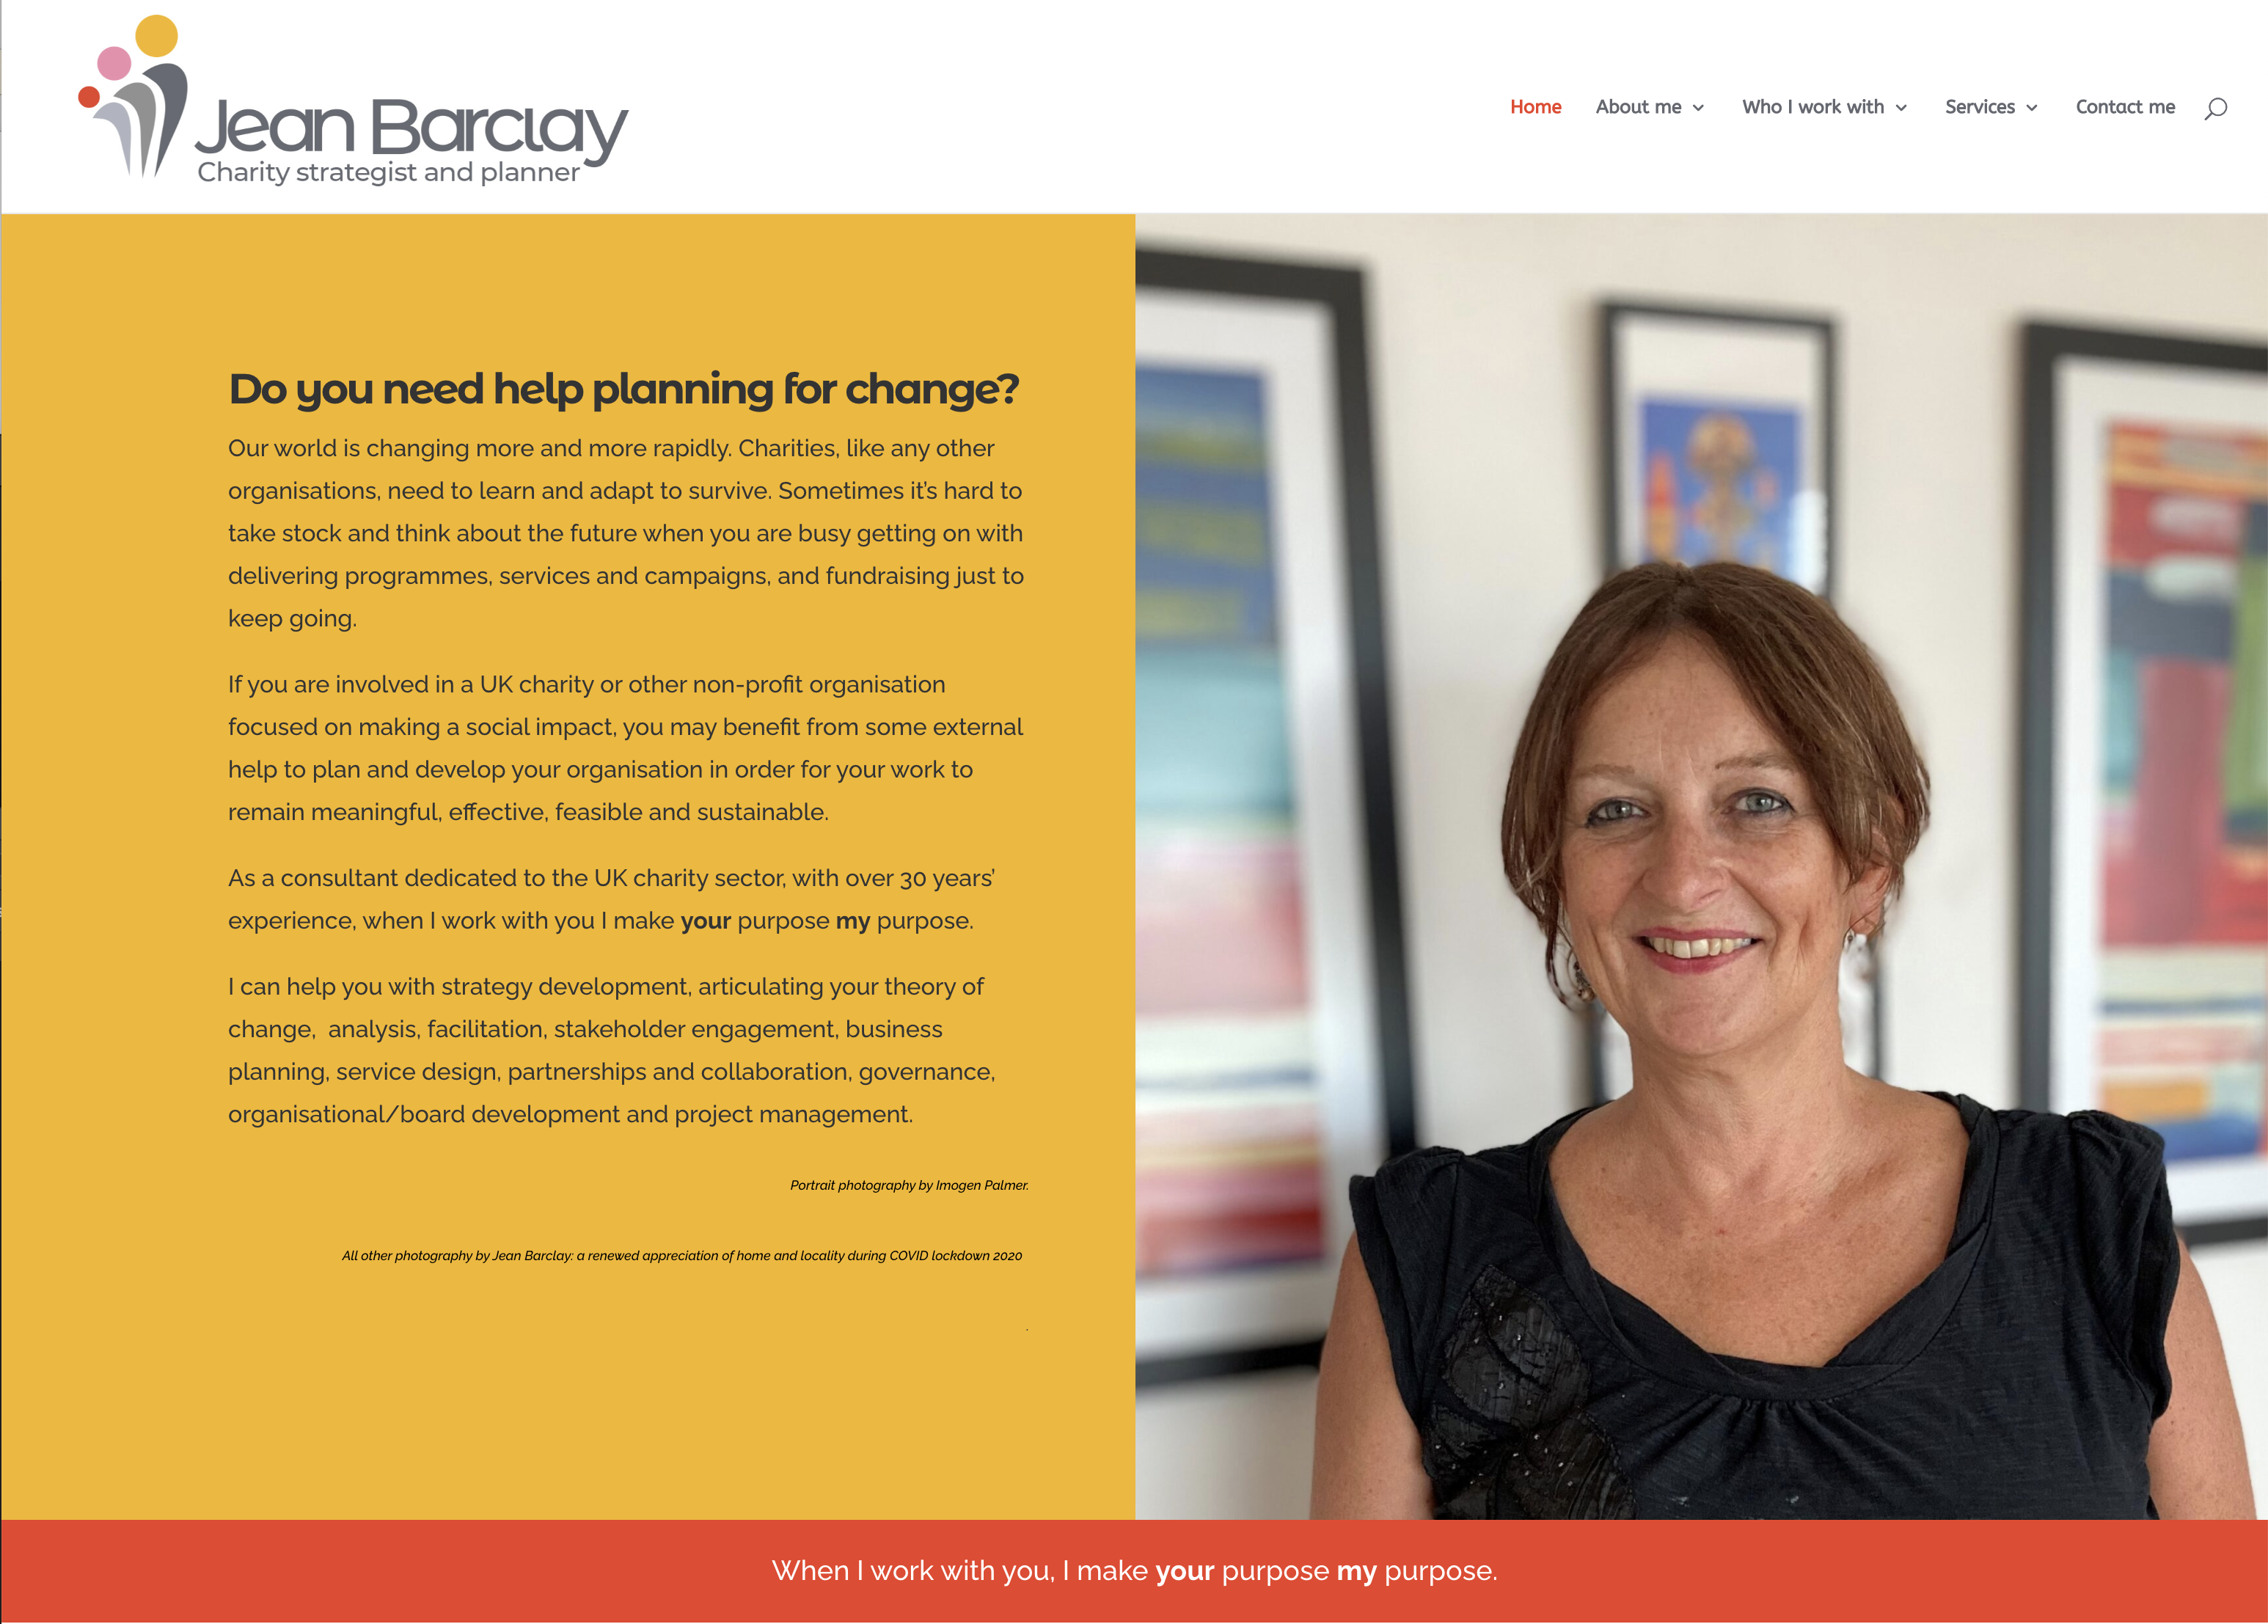 Website design and personal branding coaching for consultant to the charity sector